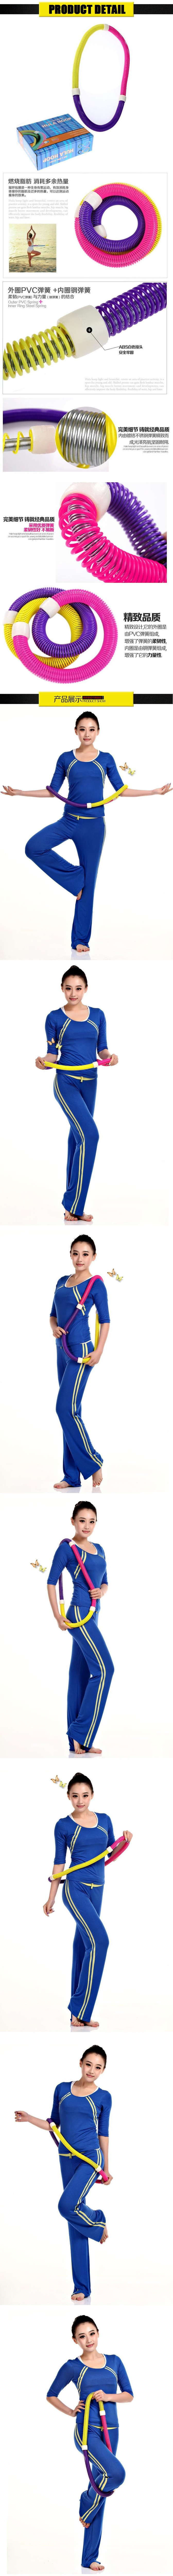 Spring Fitness Hula Hoop Gym Workout Slim Body Exercise Equipment